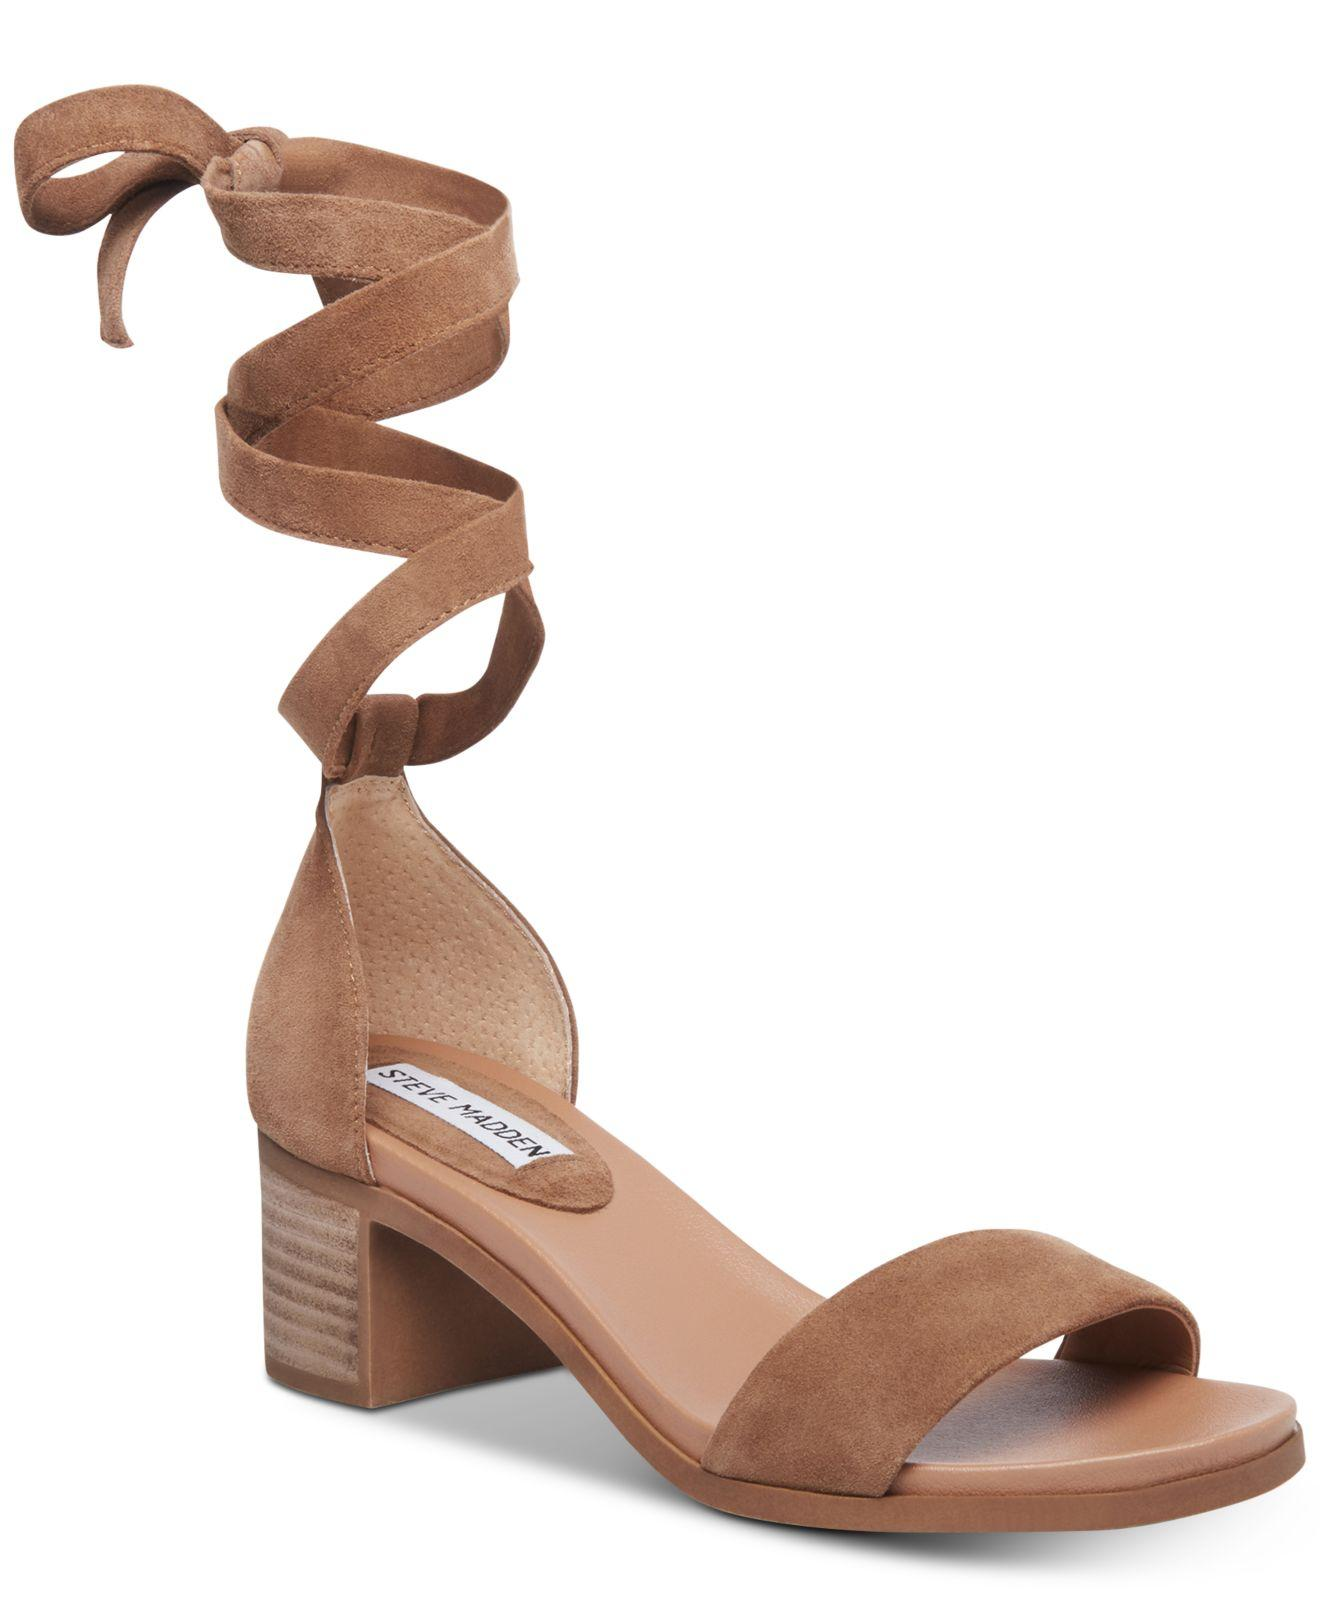 bf149a9e8532 Lyst - Steve Madden Adjust Tie-up Sandals in Brown